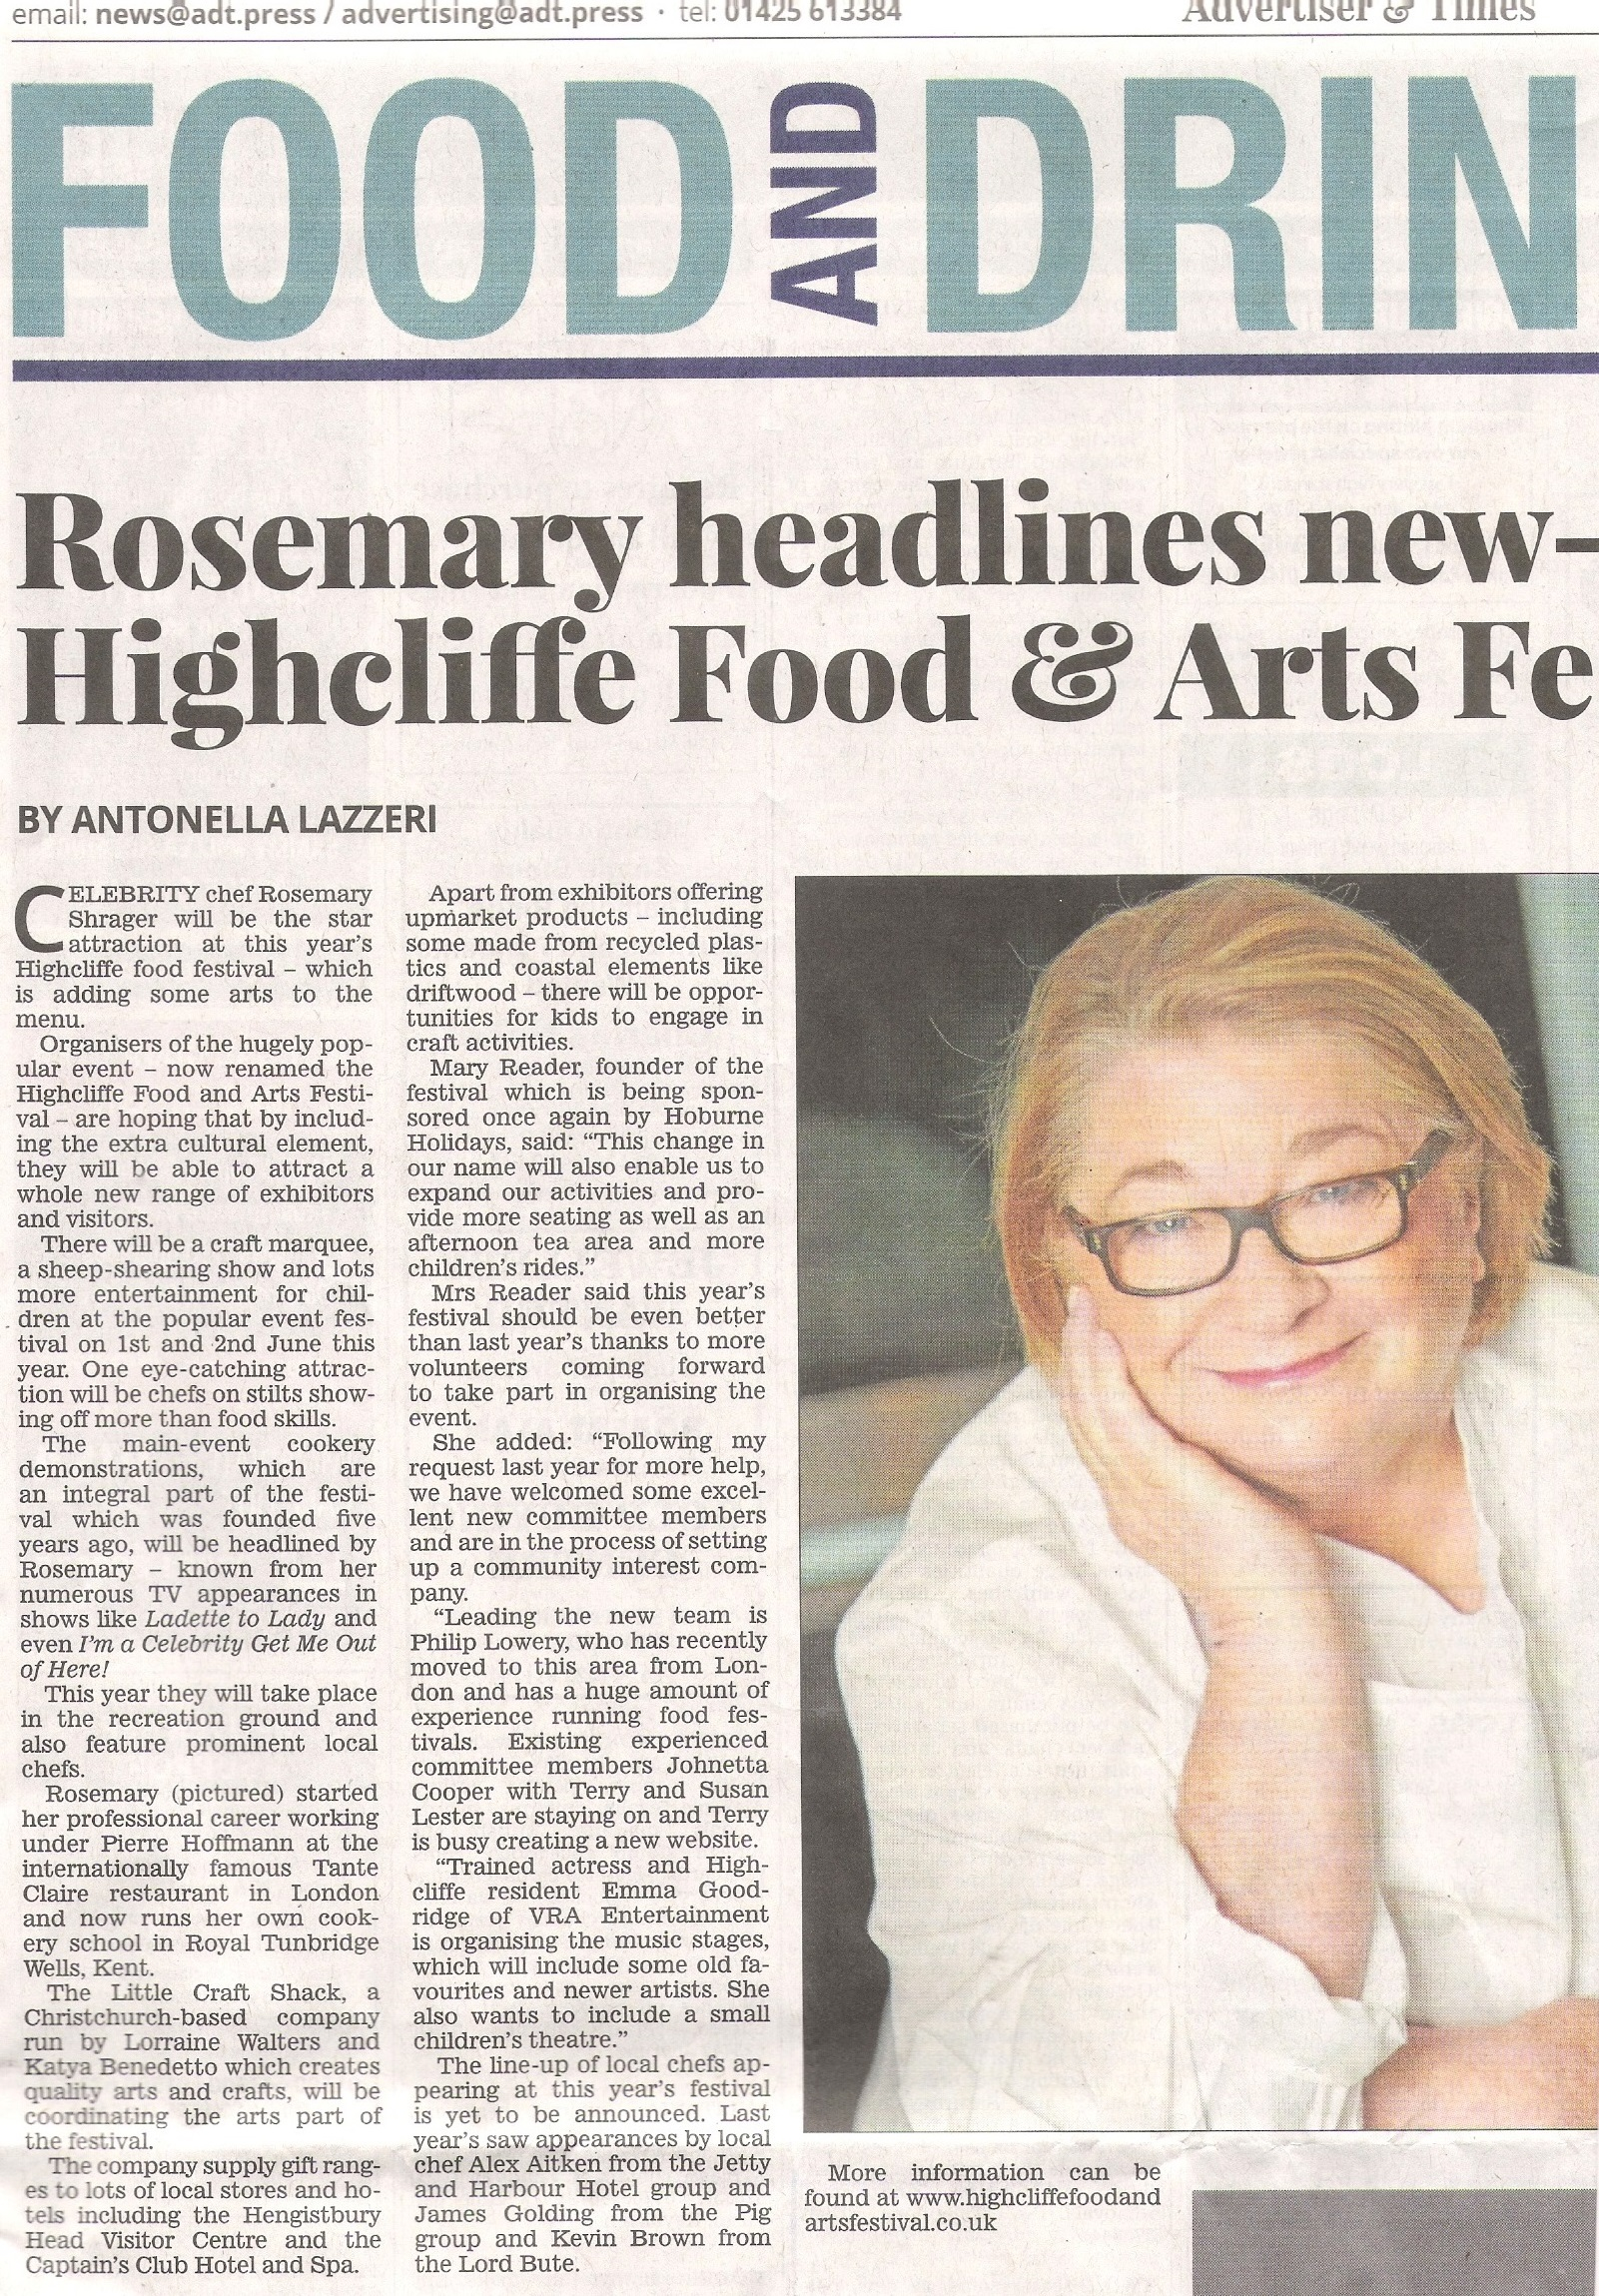 Highcliffe Food & Arts Festival with Rosemary Shrager